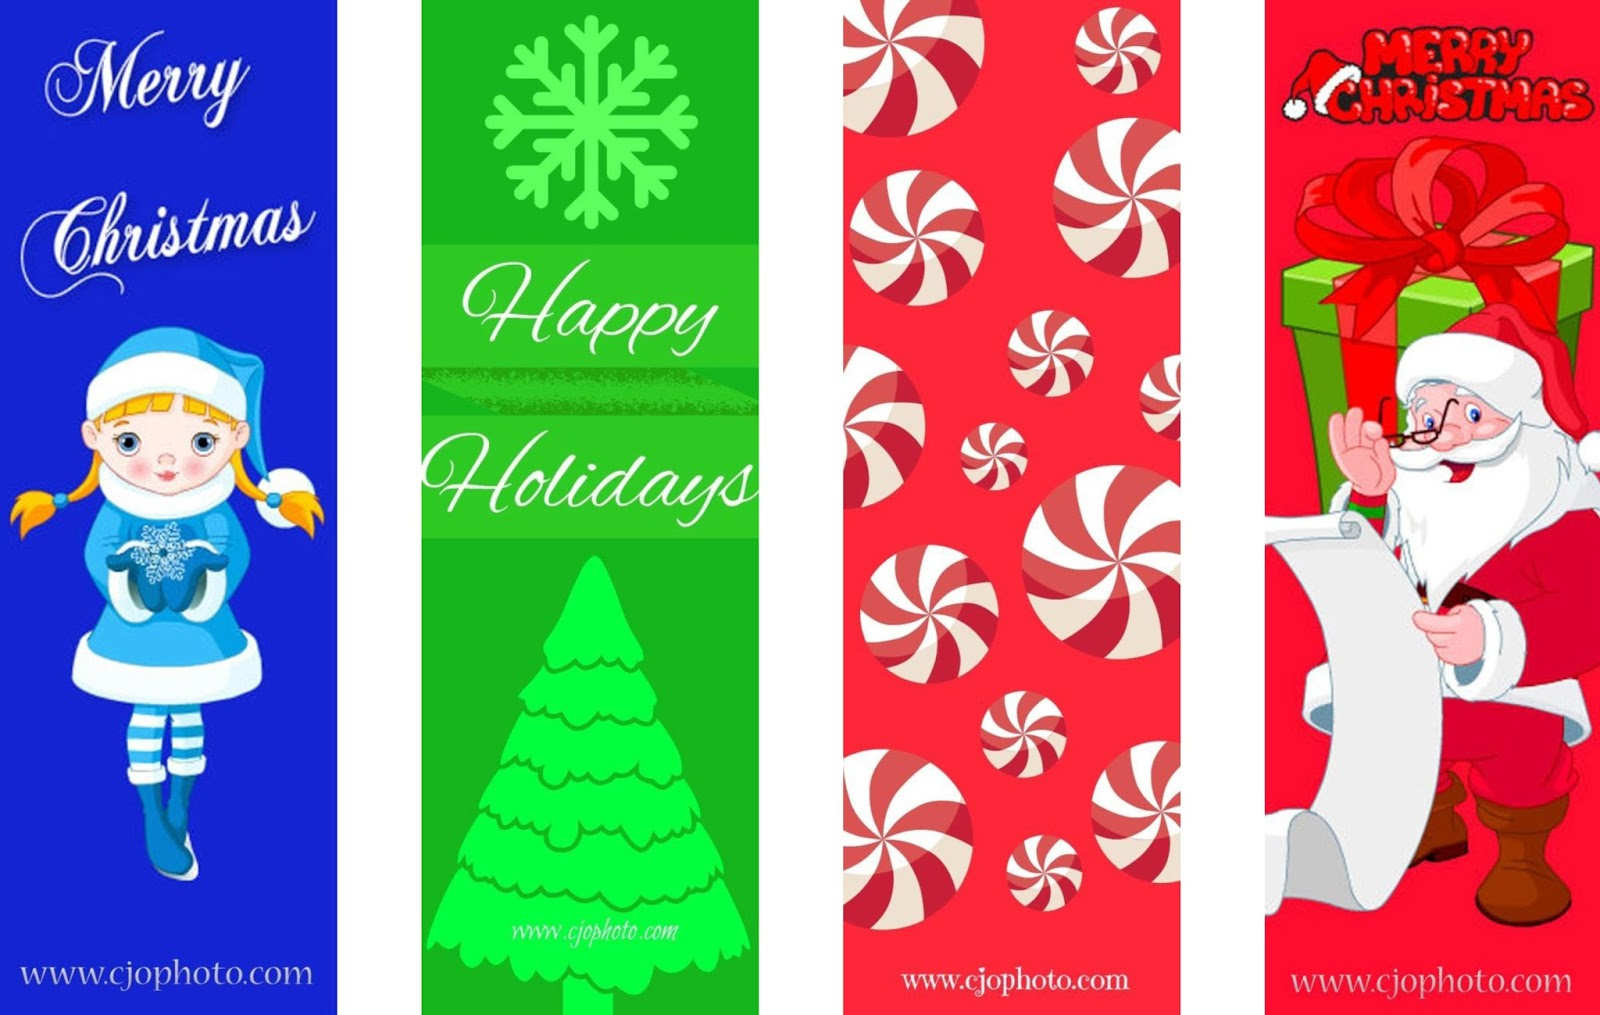 Cjo Photo: Printable Bookmarks: Christmas - Free Printable Bookmarks For Christmas